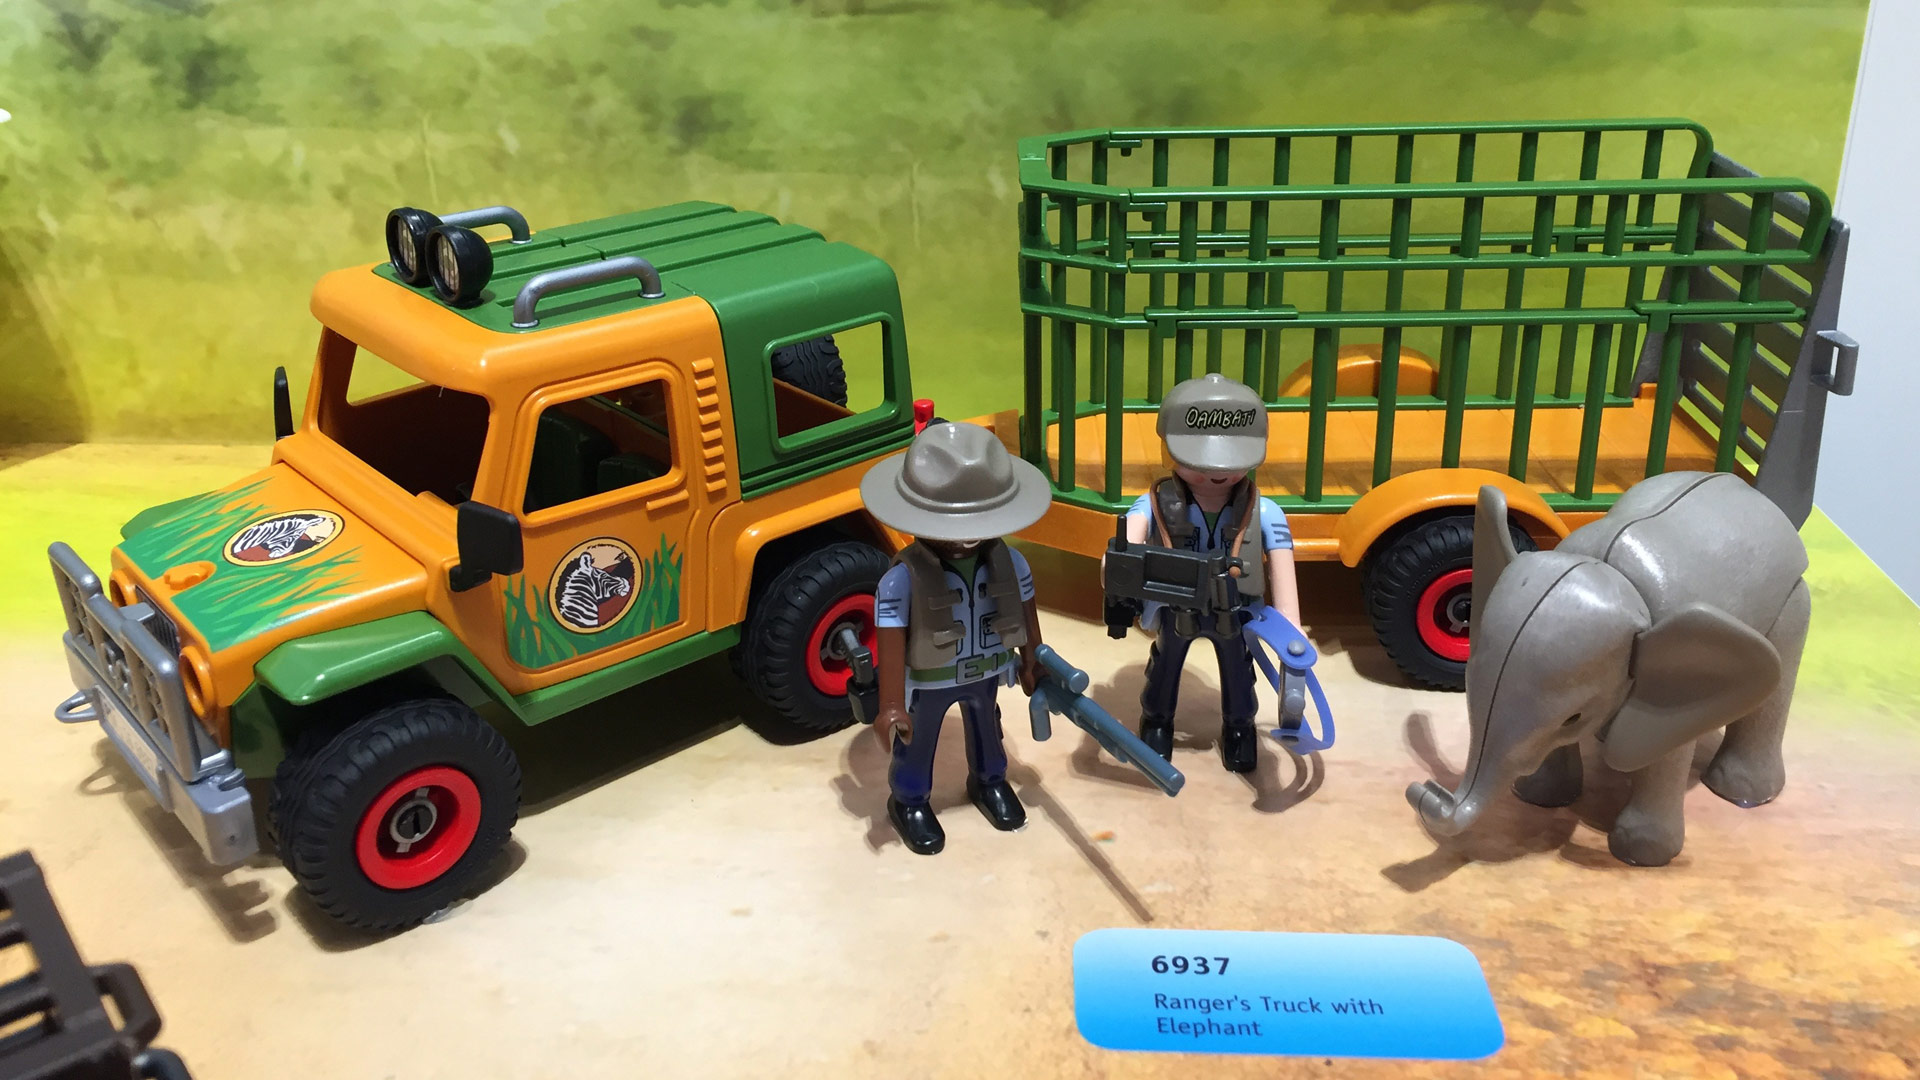 Playmobil Wildlife Set 6937 Ranger's Truck with Elephant at Toy Fair 2017